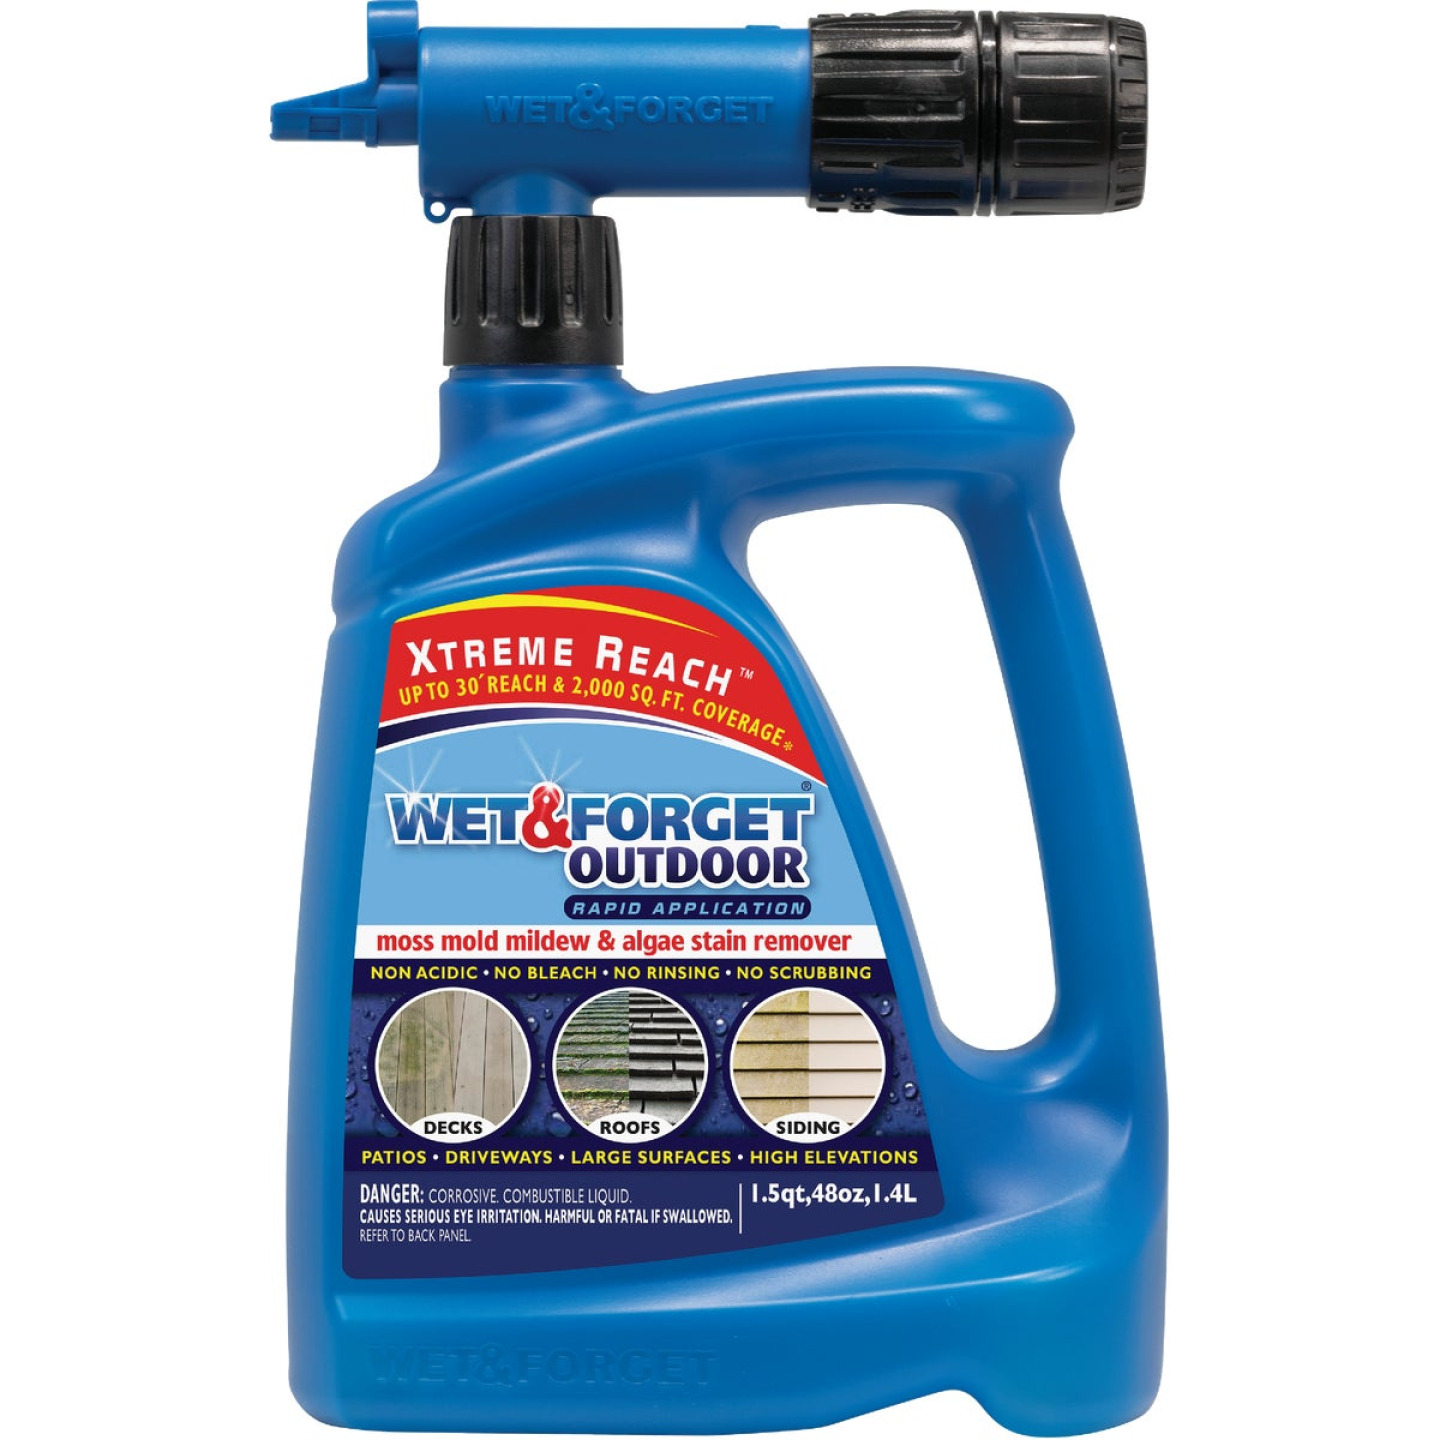 Wet & Forget 48 Oz. Hose End Spray Concentrate Moss, Mildew, Algae, & Mold Stain Remover Image 1